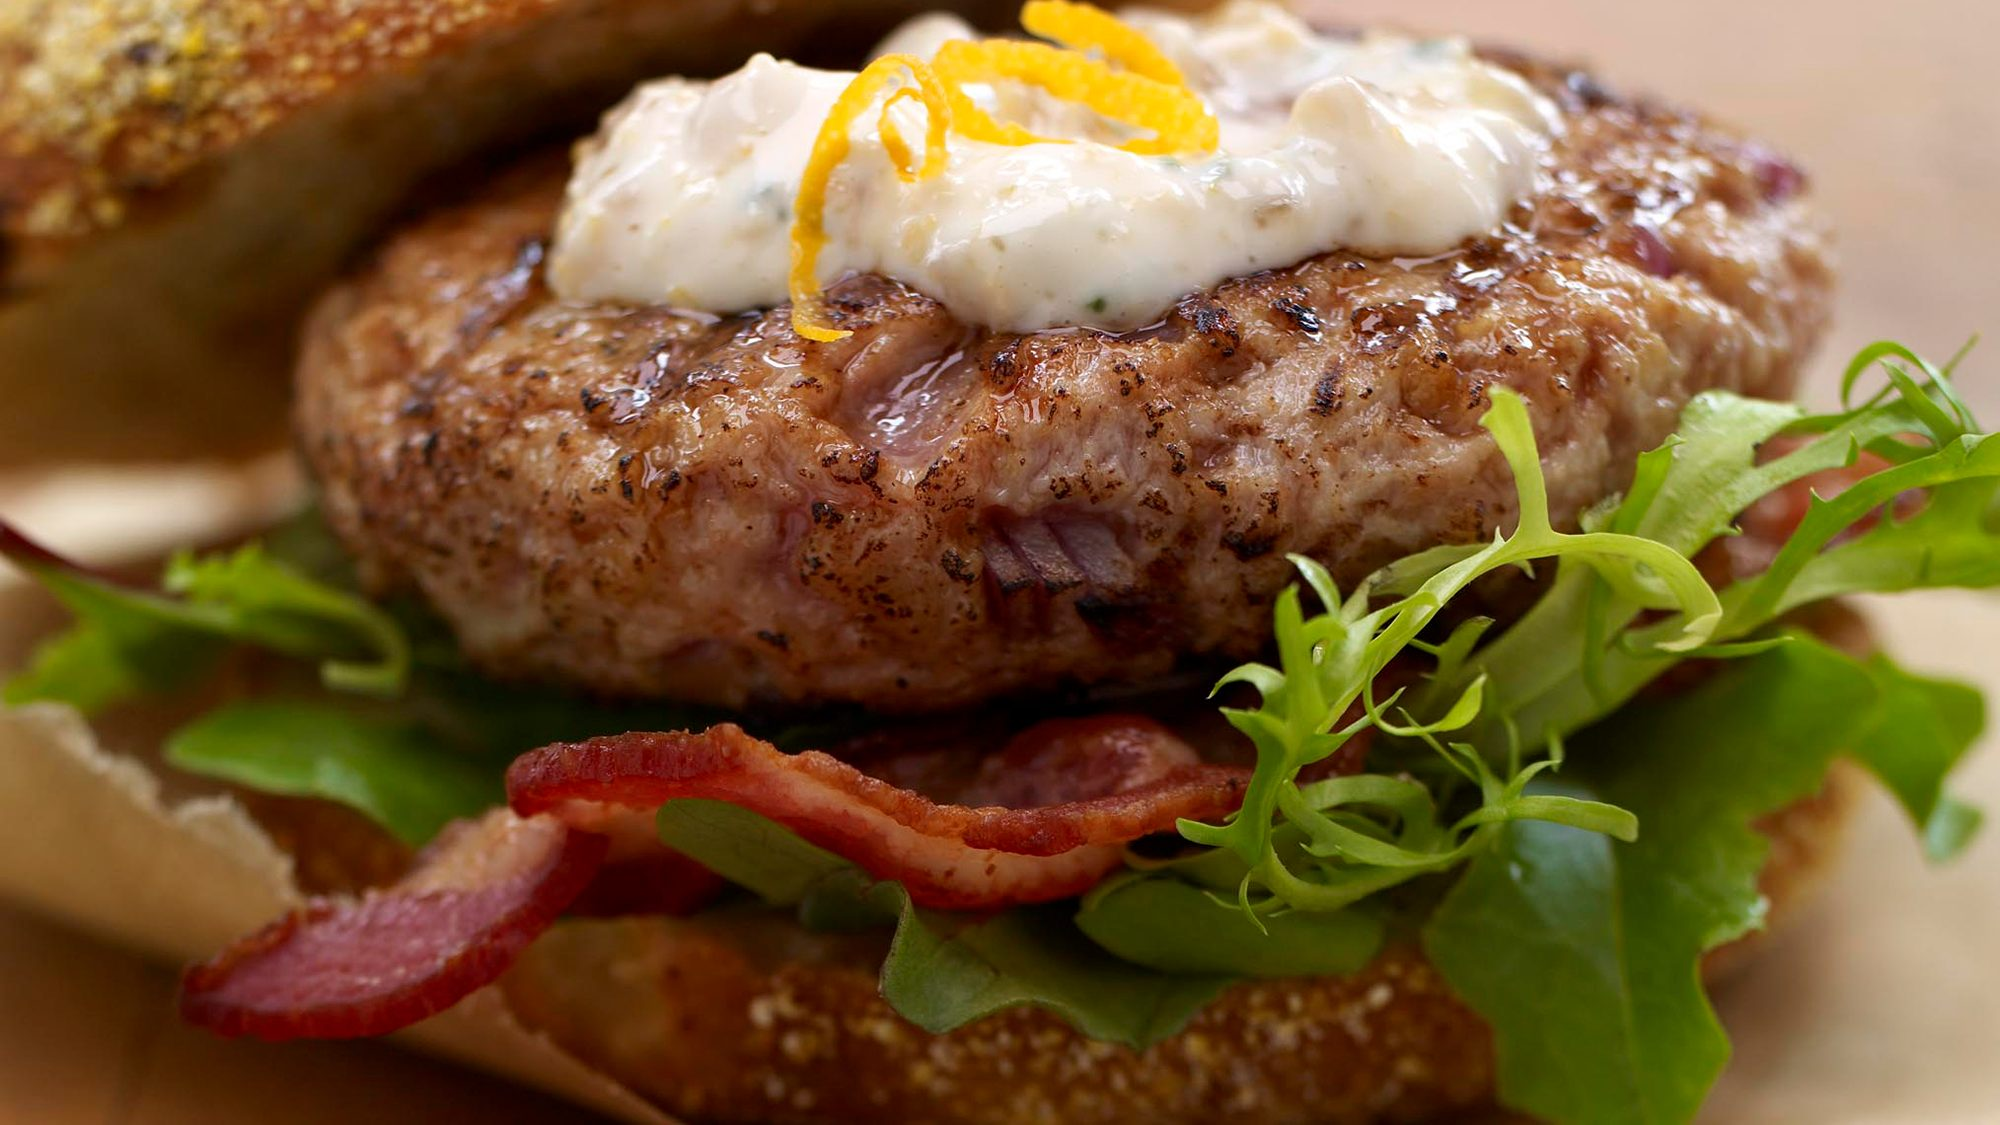 wood-smoked-chicken-burgers-with-orange-peel-aioli.jpg